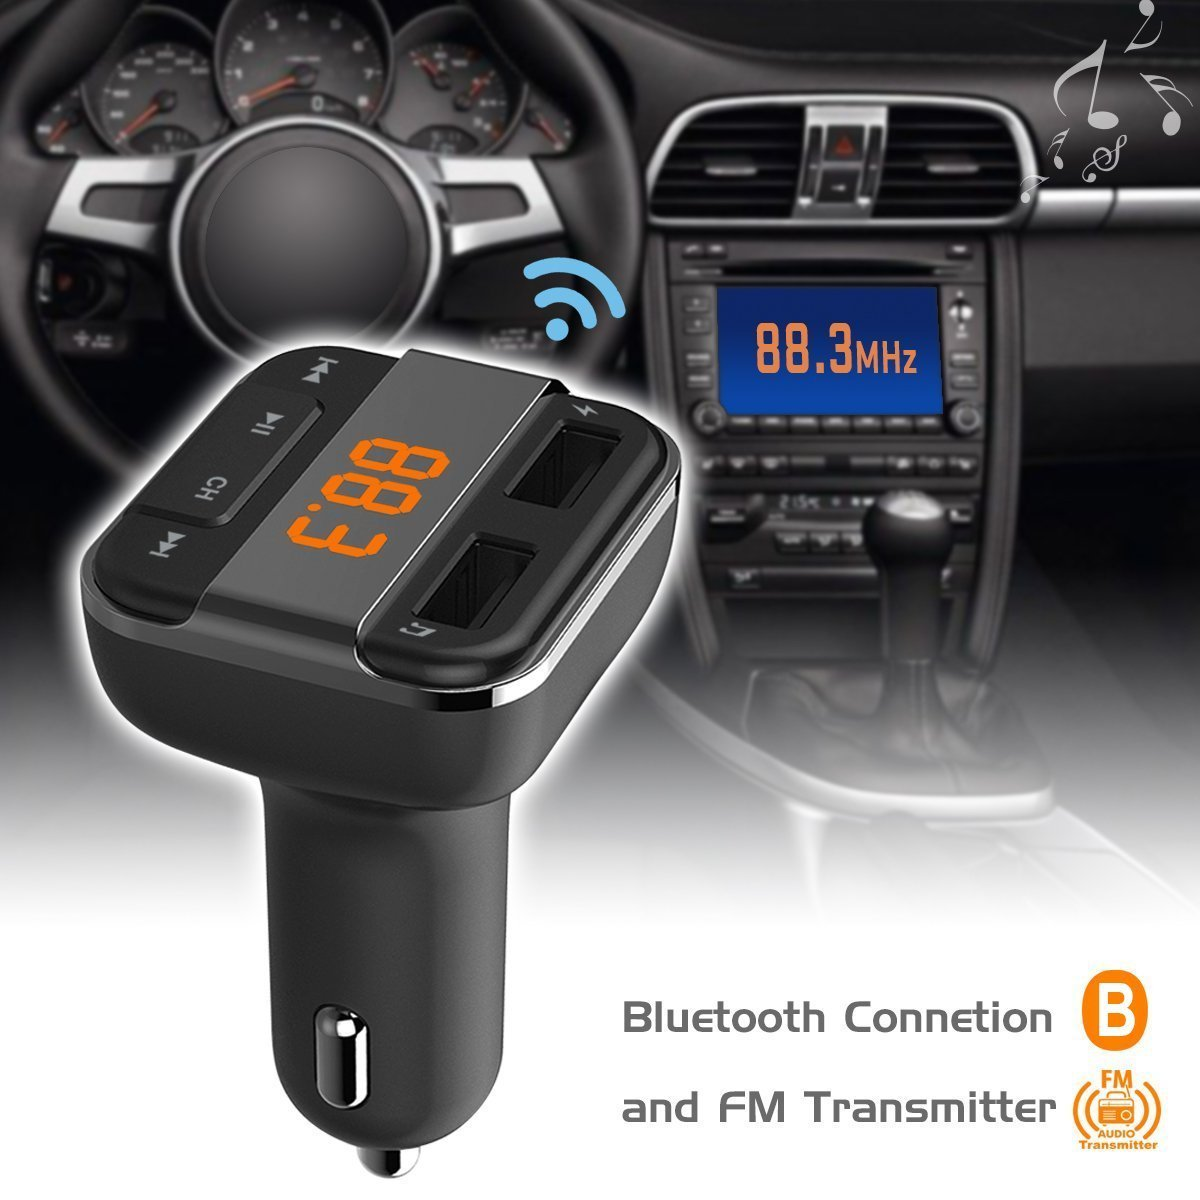 Perbeat Car Bluetooth FM transmitter for iPhone/Android with MP3 Music controls. Dual USB Charging ports. Supports USB/Micro SD card. Hands Free Remote control BT10 Black by Perbeat (Image #6)